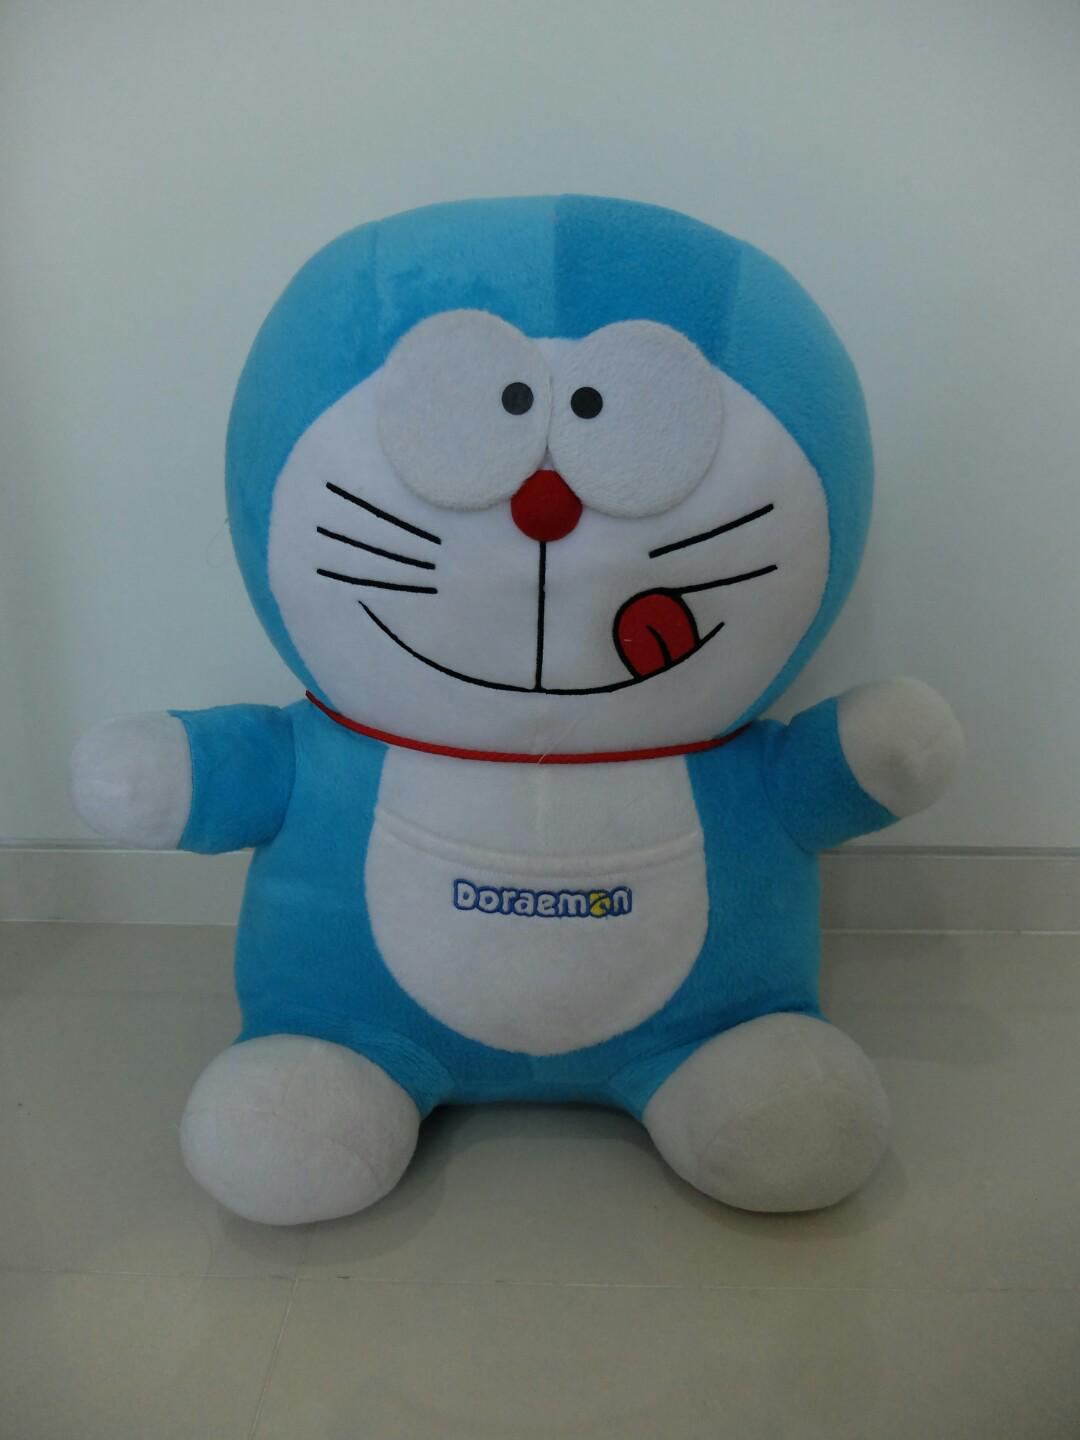 Boneka doraemon Toys & Collectibles Toys on Carousell